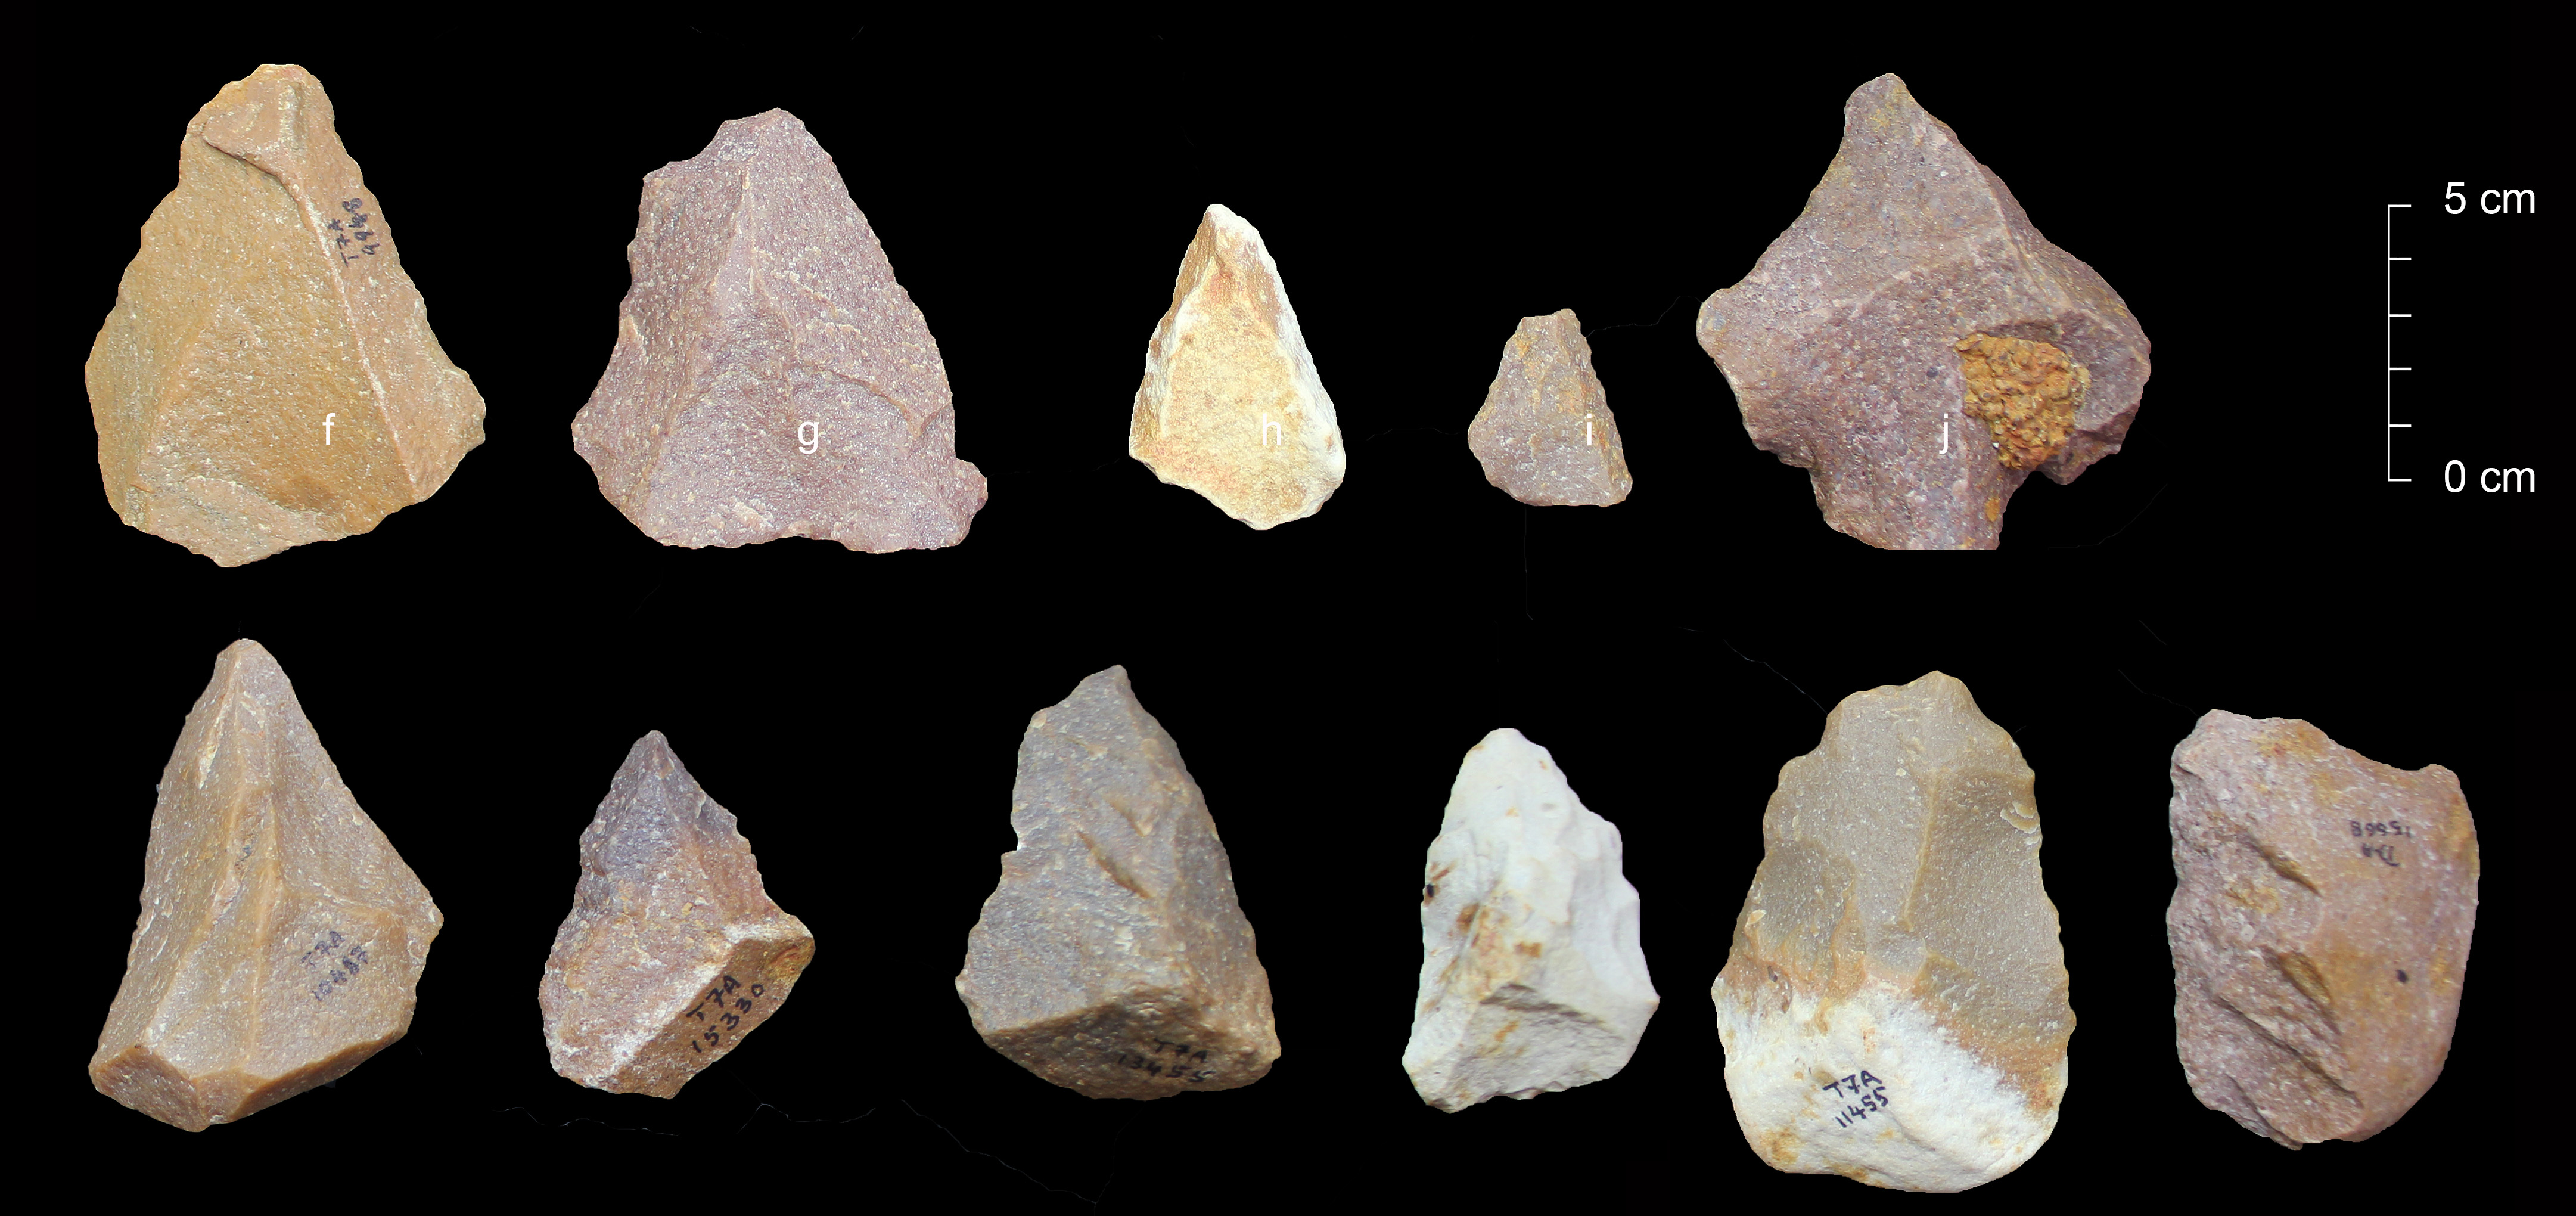 Stone tools recovered at the Attirampakkam site in India.